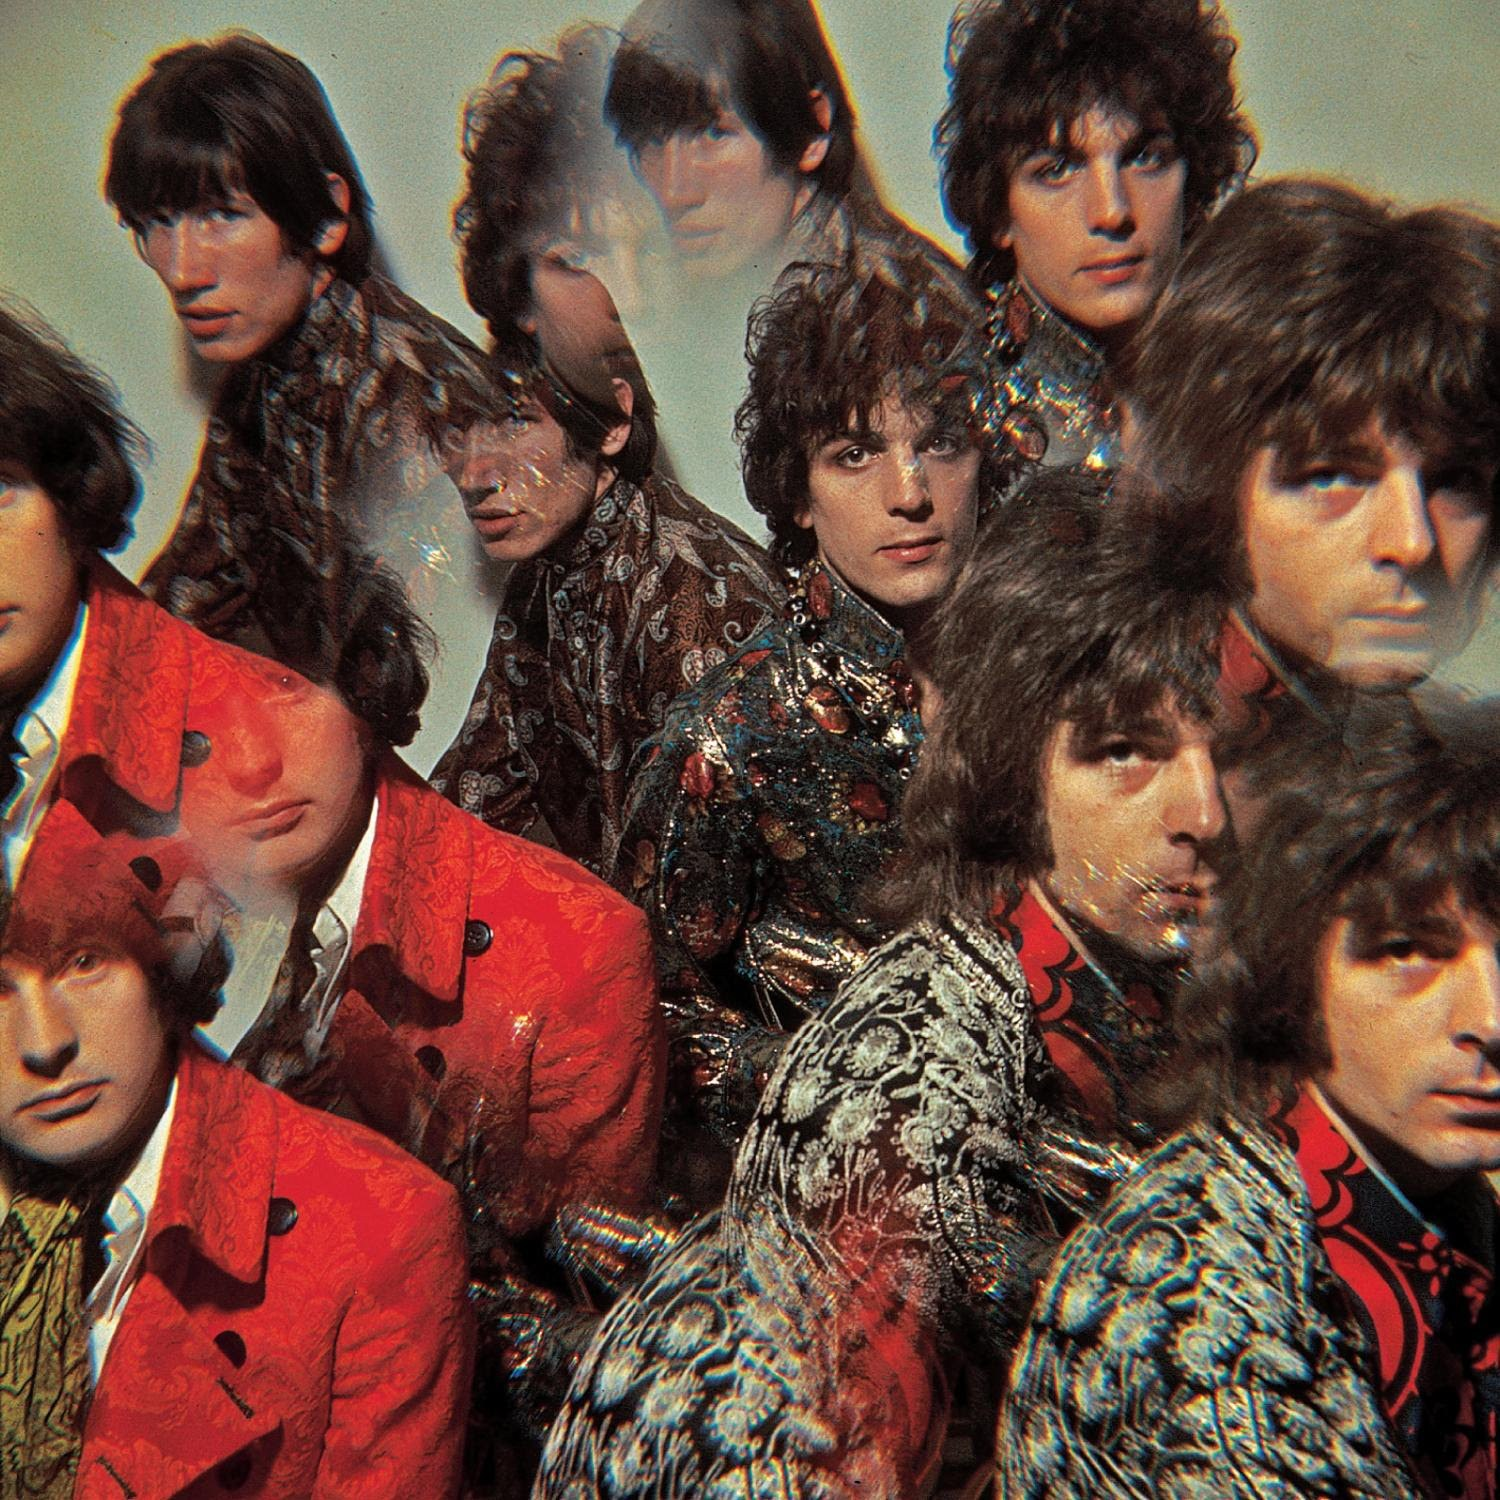 Pink_Floyd-The_Piper_at_the_Gates_of_Dawn-1.jpg